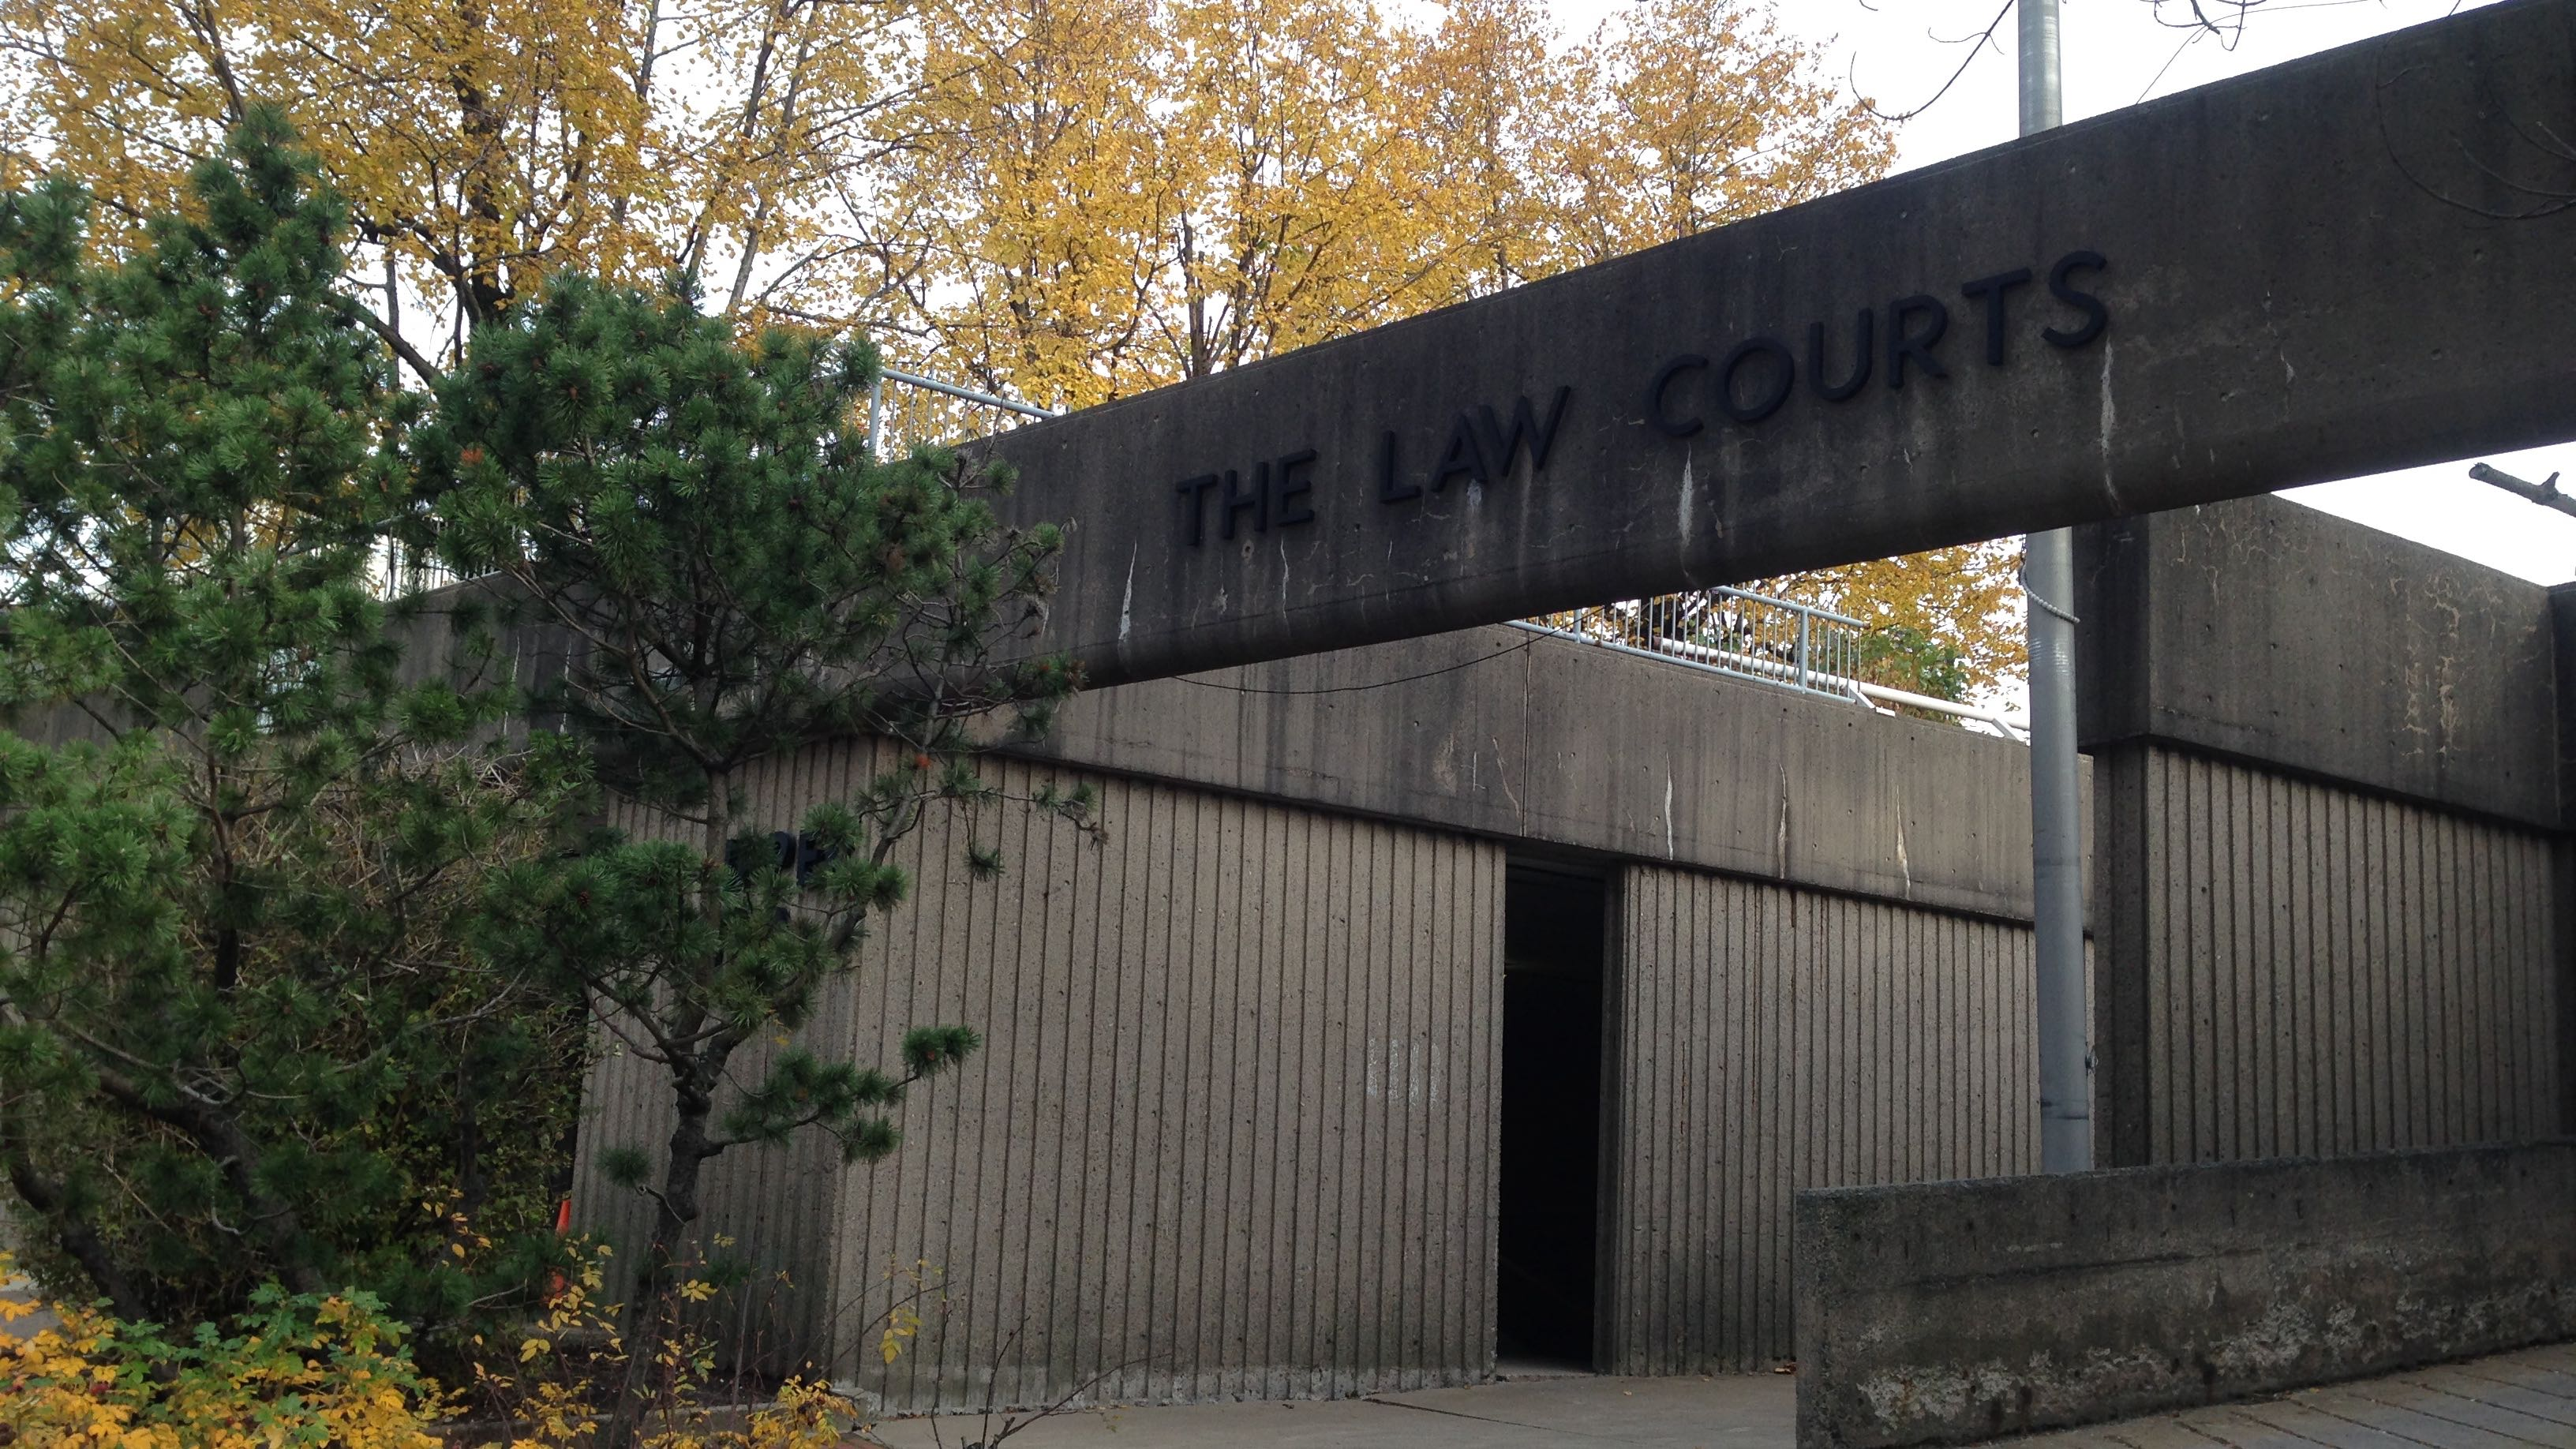 Hector Mantolino appeared in Nova Scotia Supreme Court this week for sentencing. The hearing will resume in December.